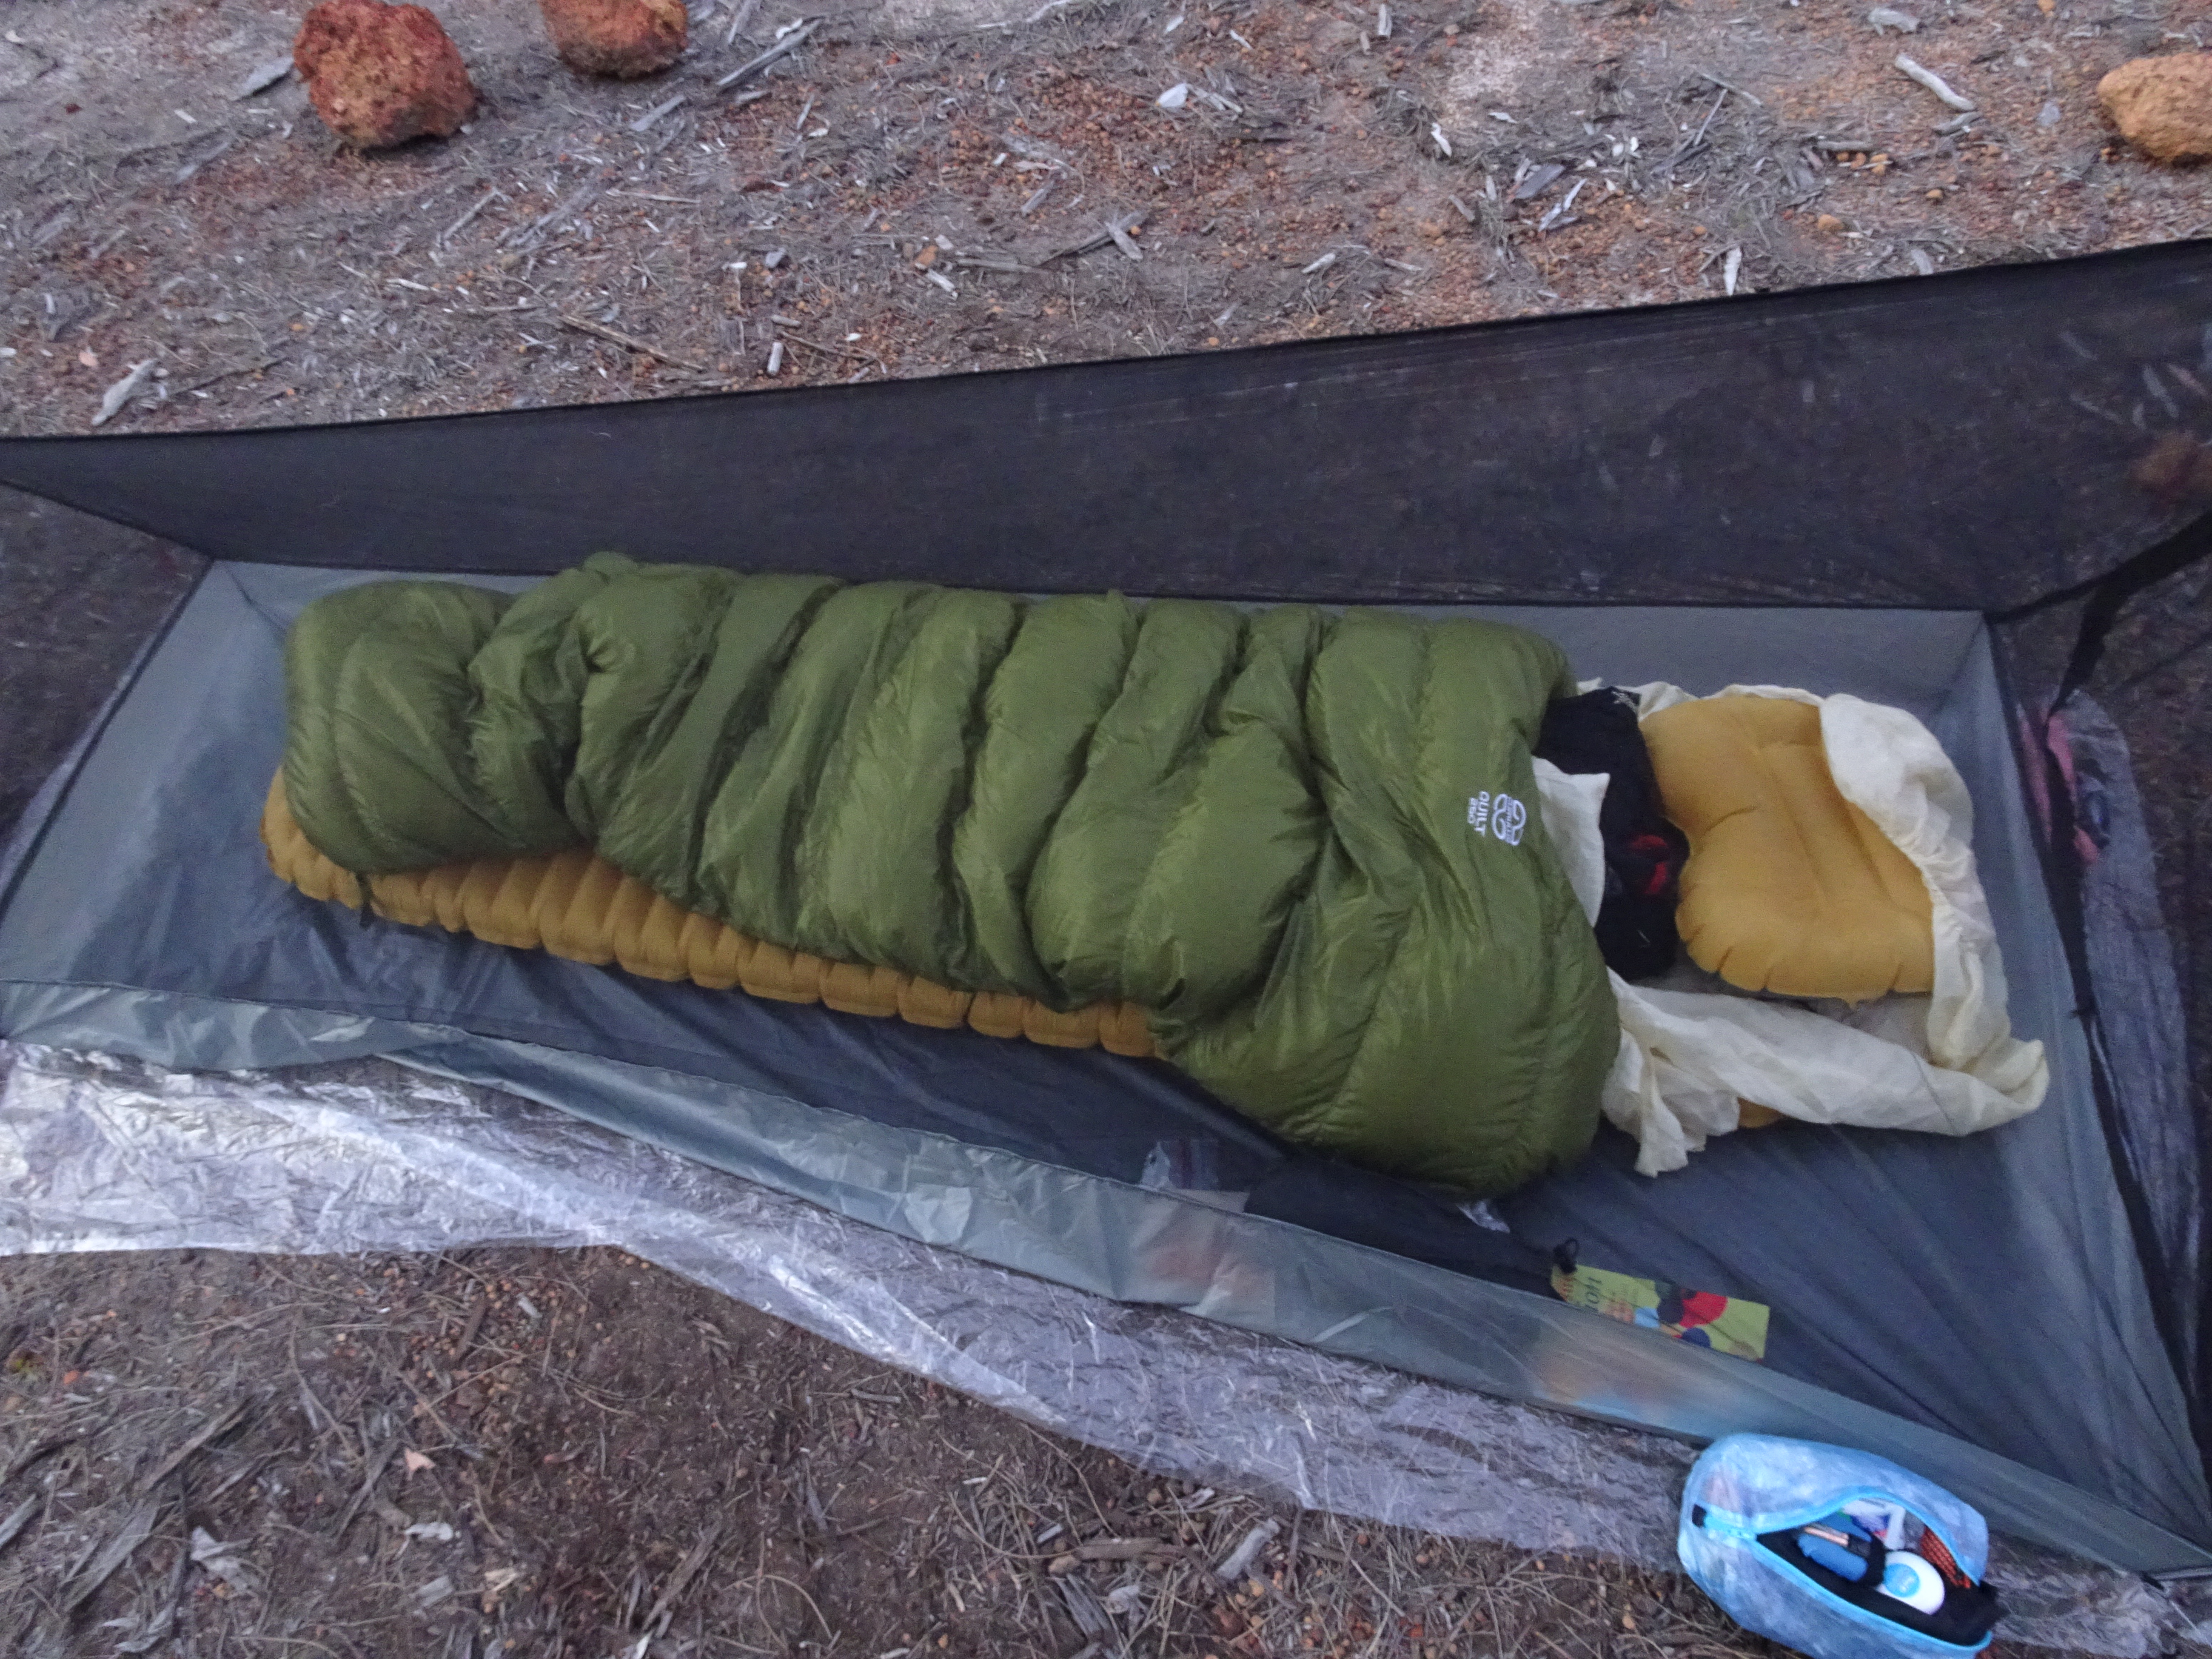 The Cumulus Quilt 250 and my very lightweight sleeping-shelter system. The quilt performs well and I can recommend it with no doubt.